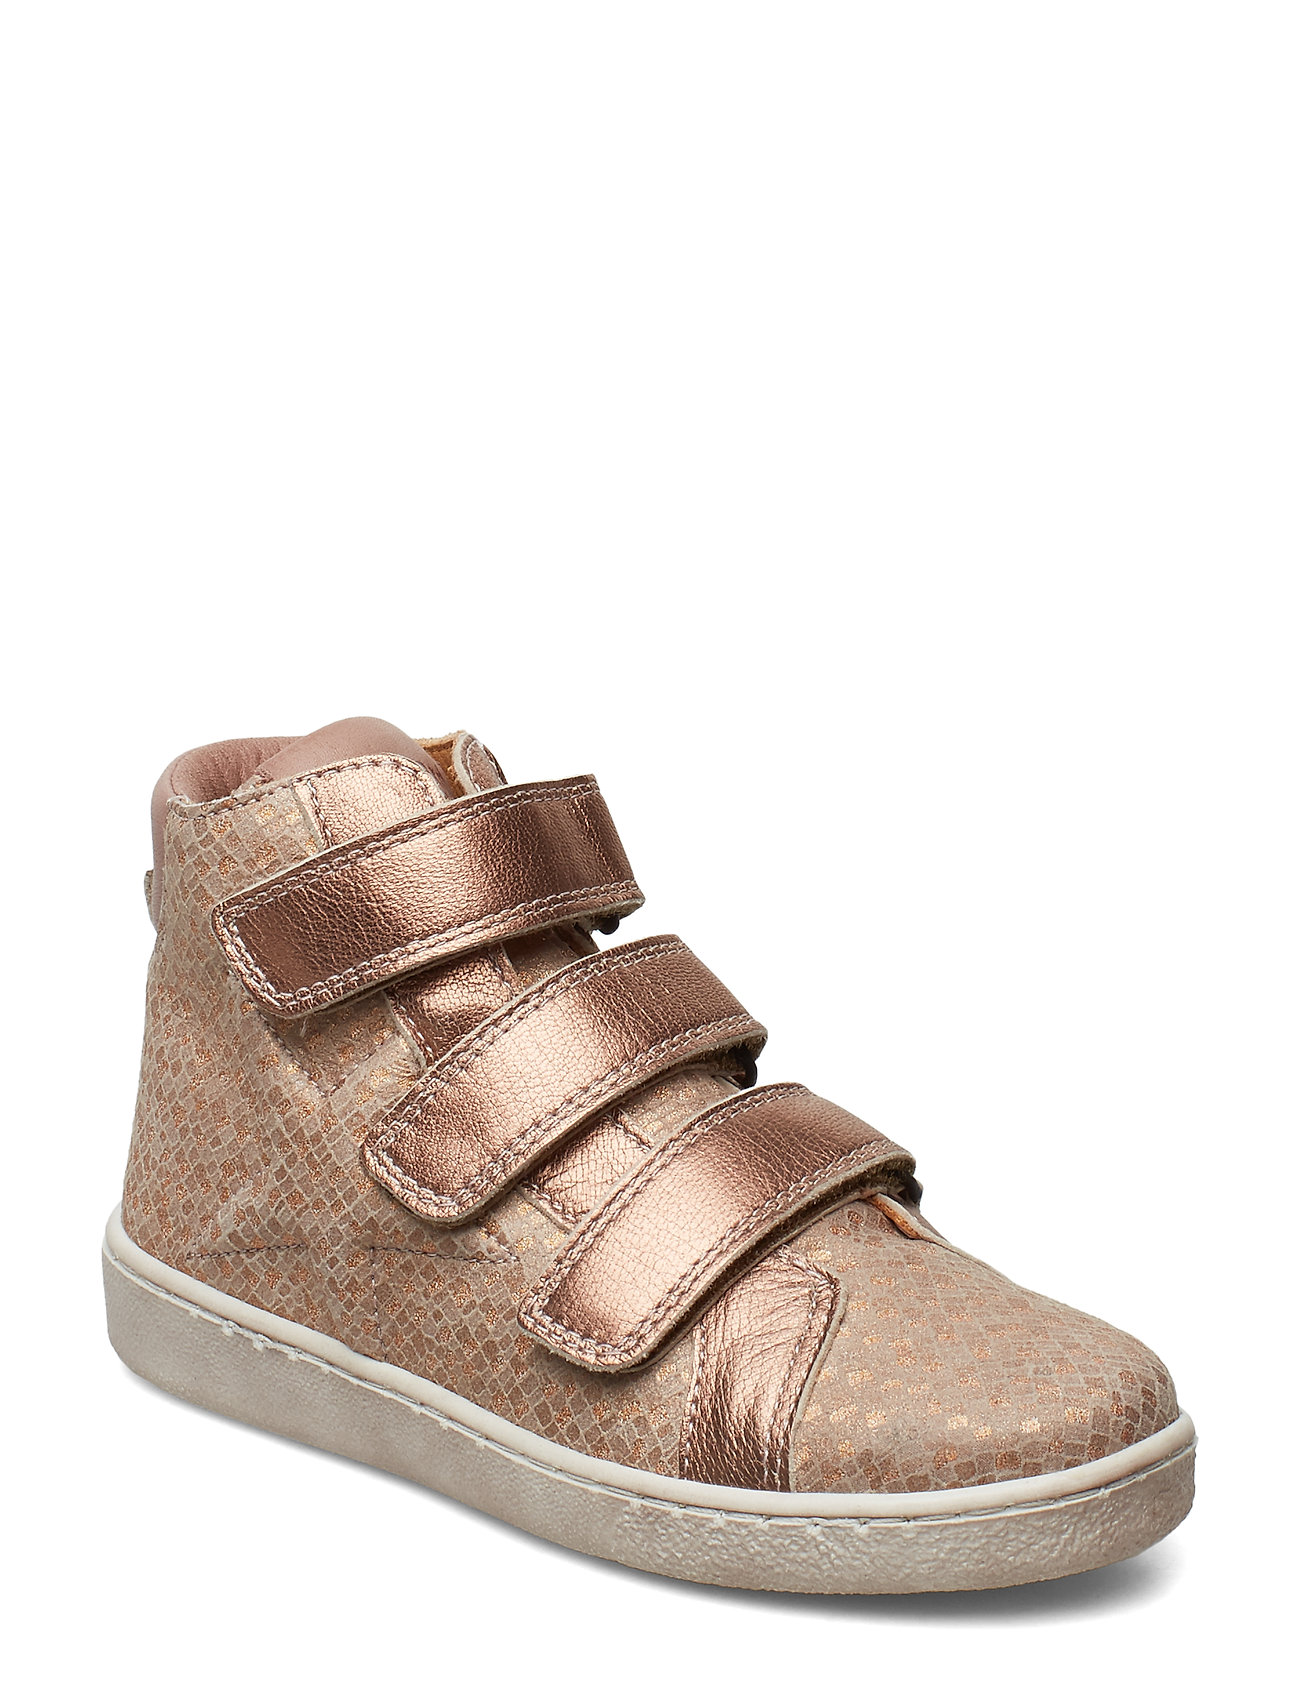 Bisgaard Velcro shoes - NUDE SQUARE